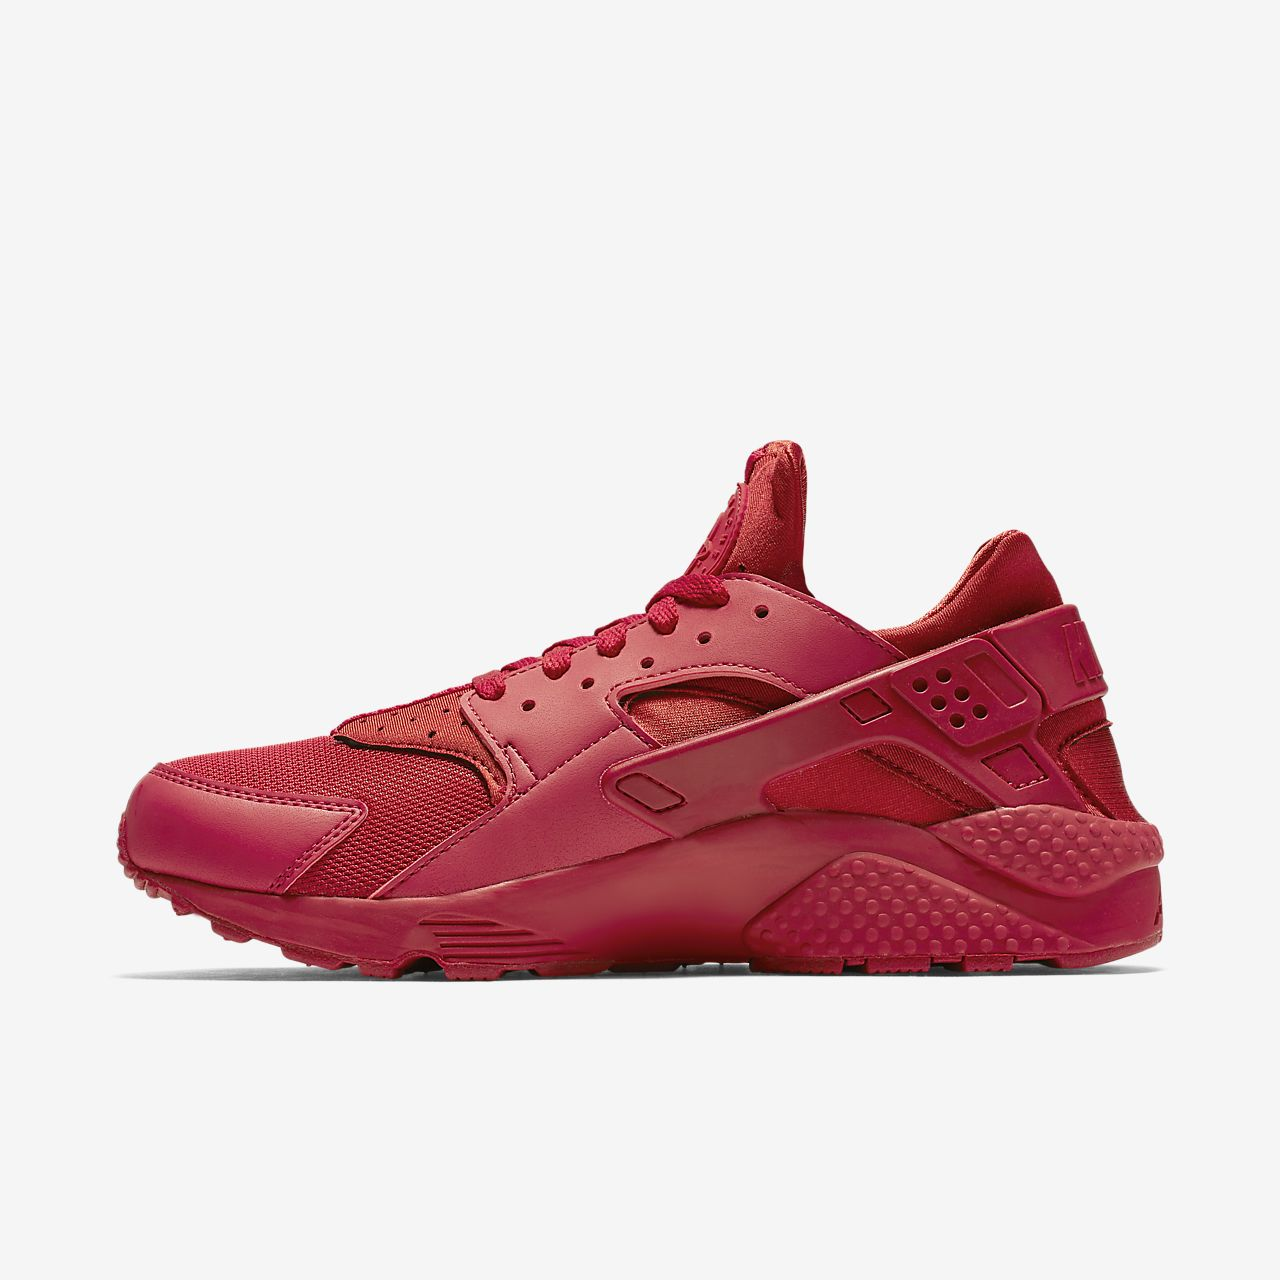 new product 597ba 92d44 ... Nike Air Huarache Men s Shoe